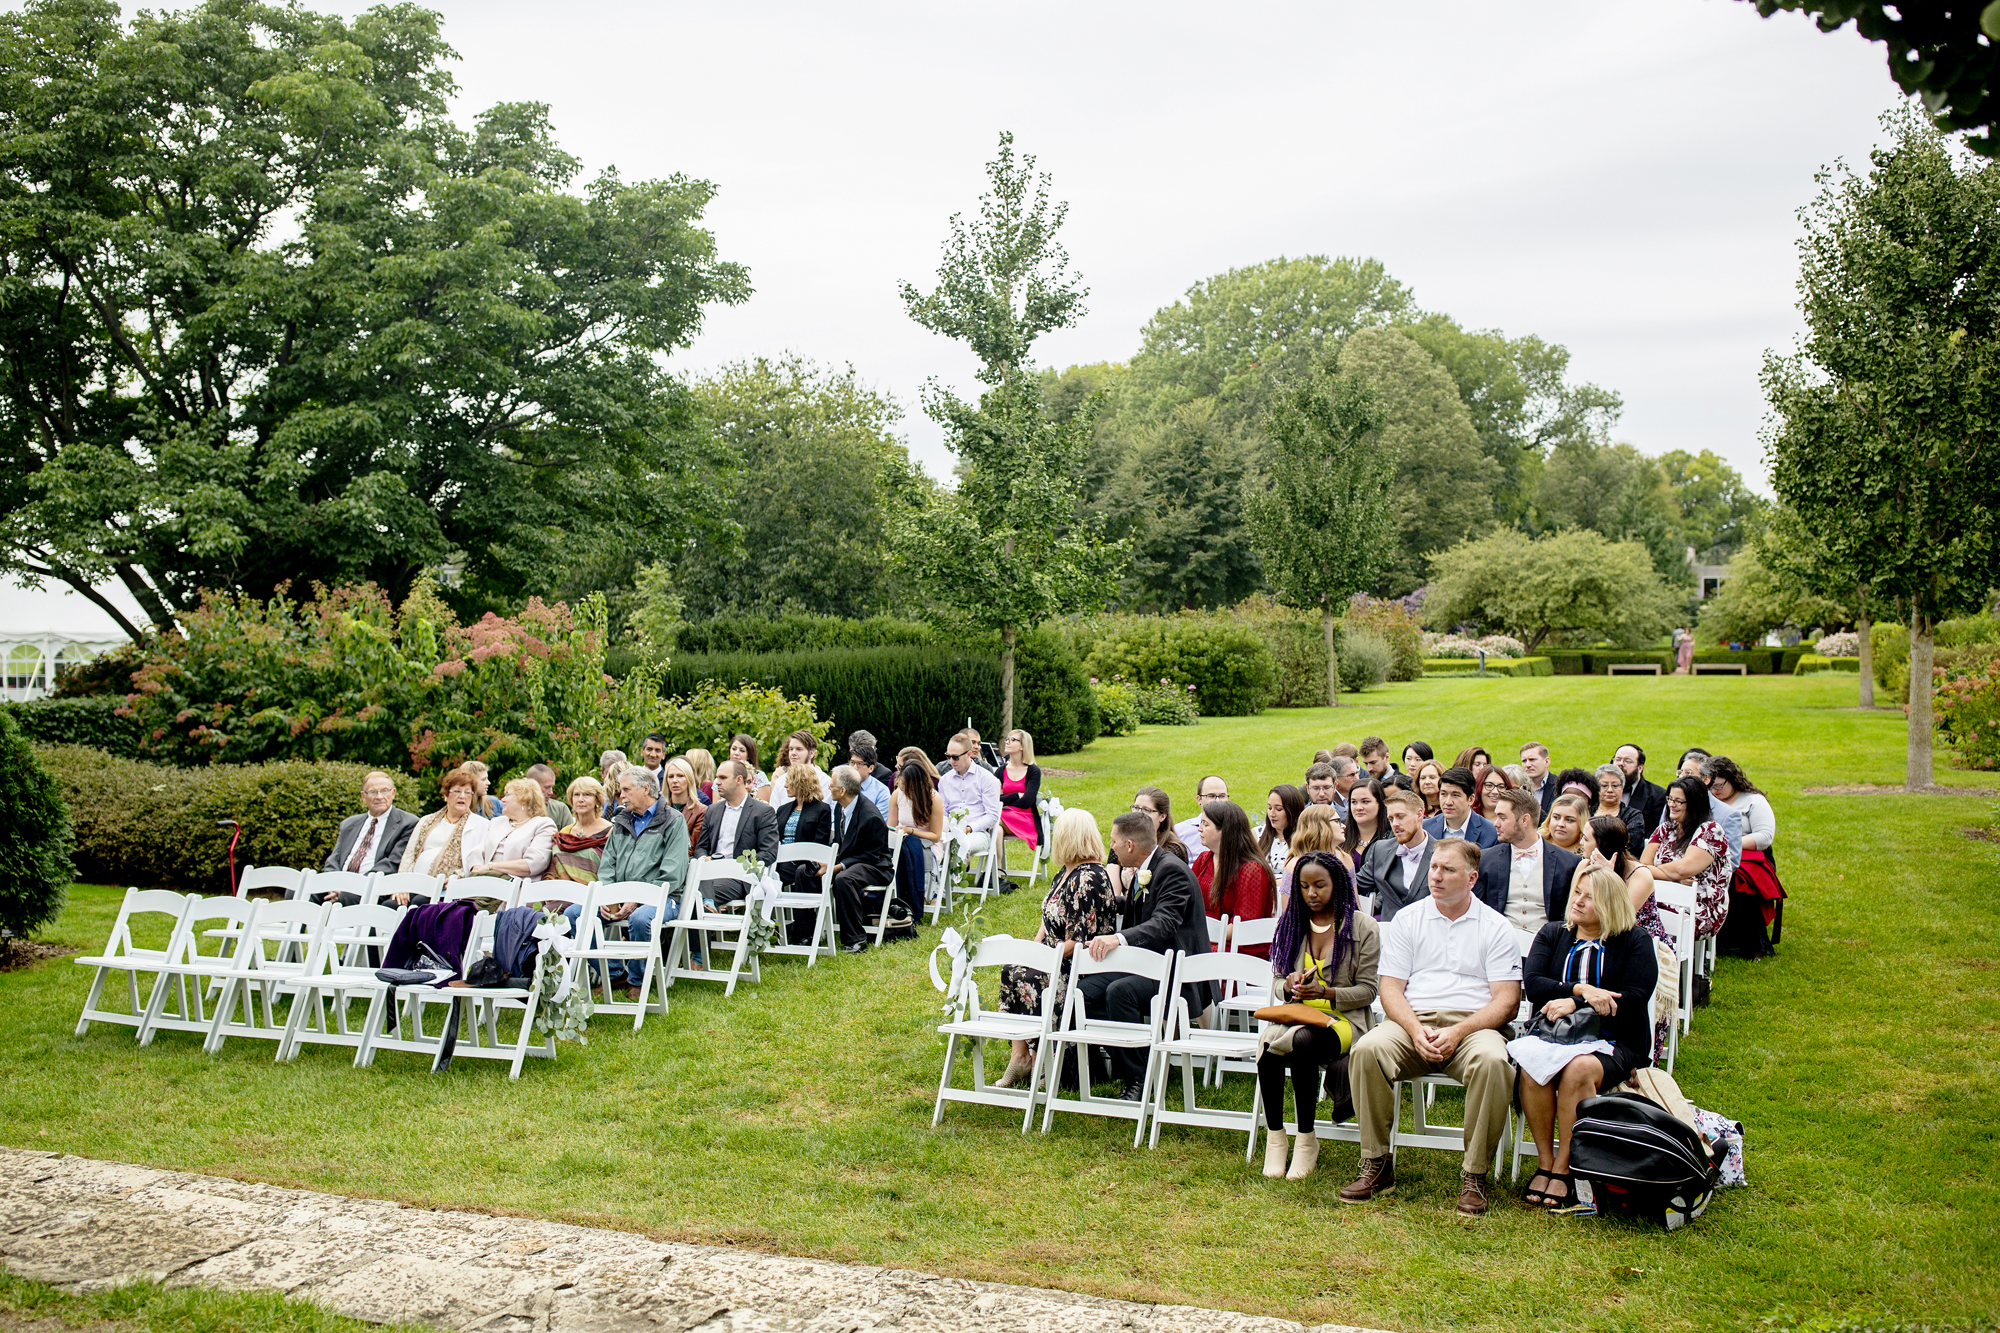 Seriously_Sabrina_Photography_Lisle_Illinois_Morton_Arboretum_Wedding_Day_Gowen58.jpg